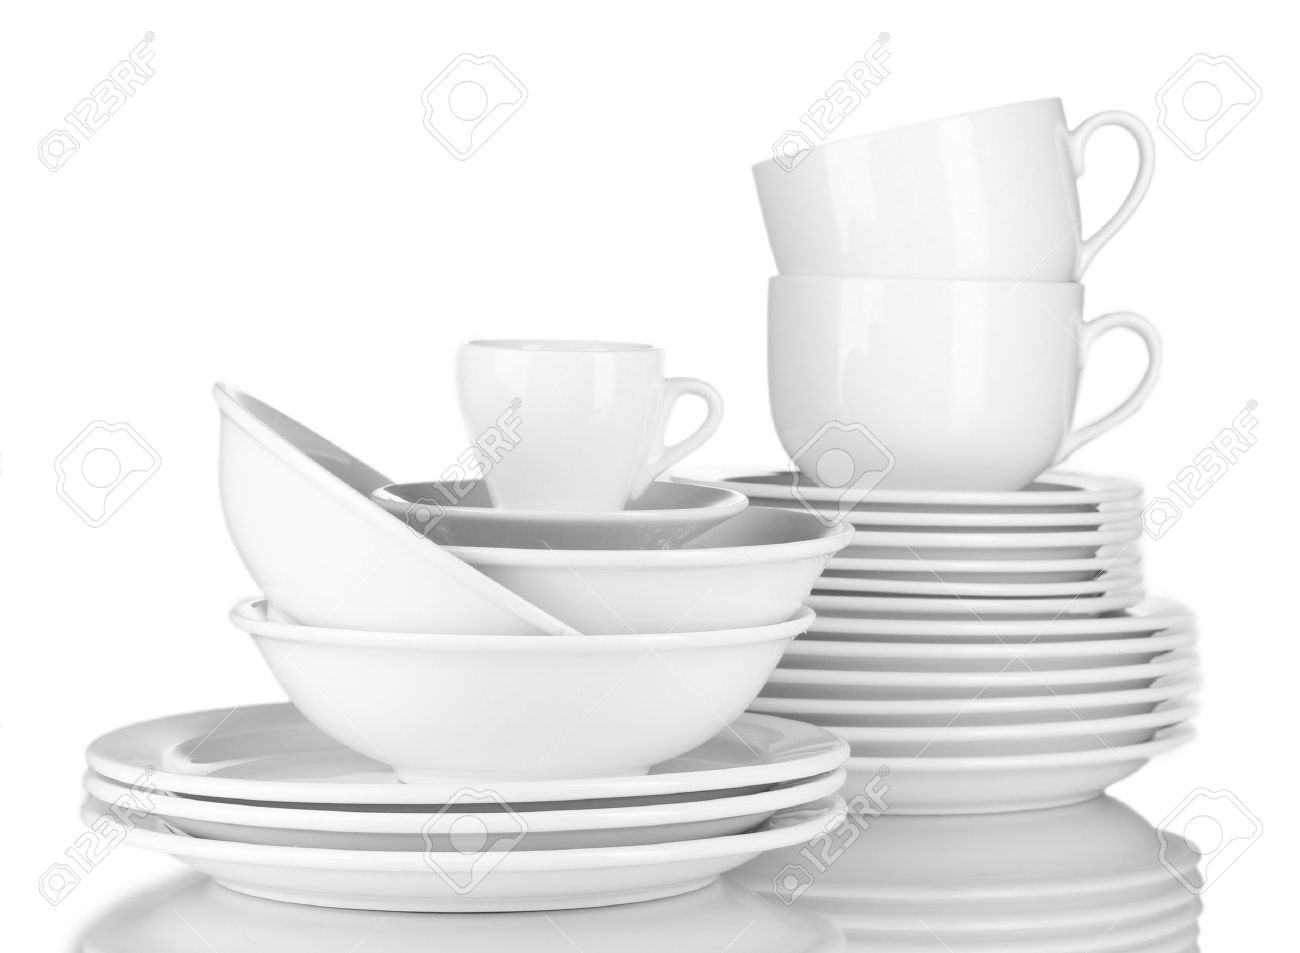 empty bowls, plates and cups on gray background Stock Photo - 13374898